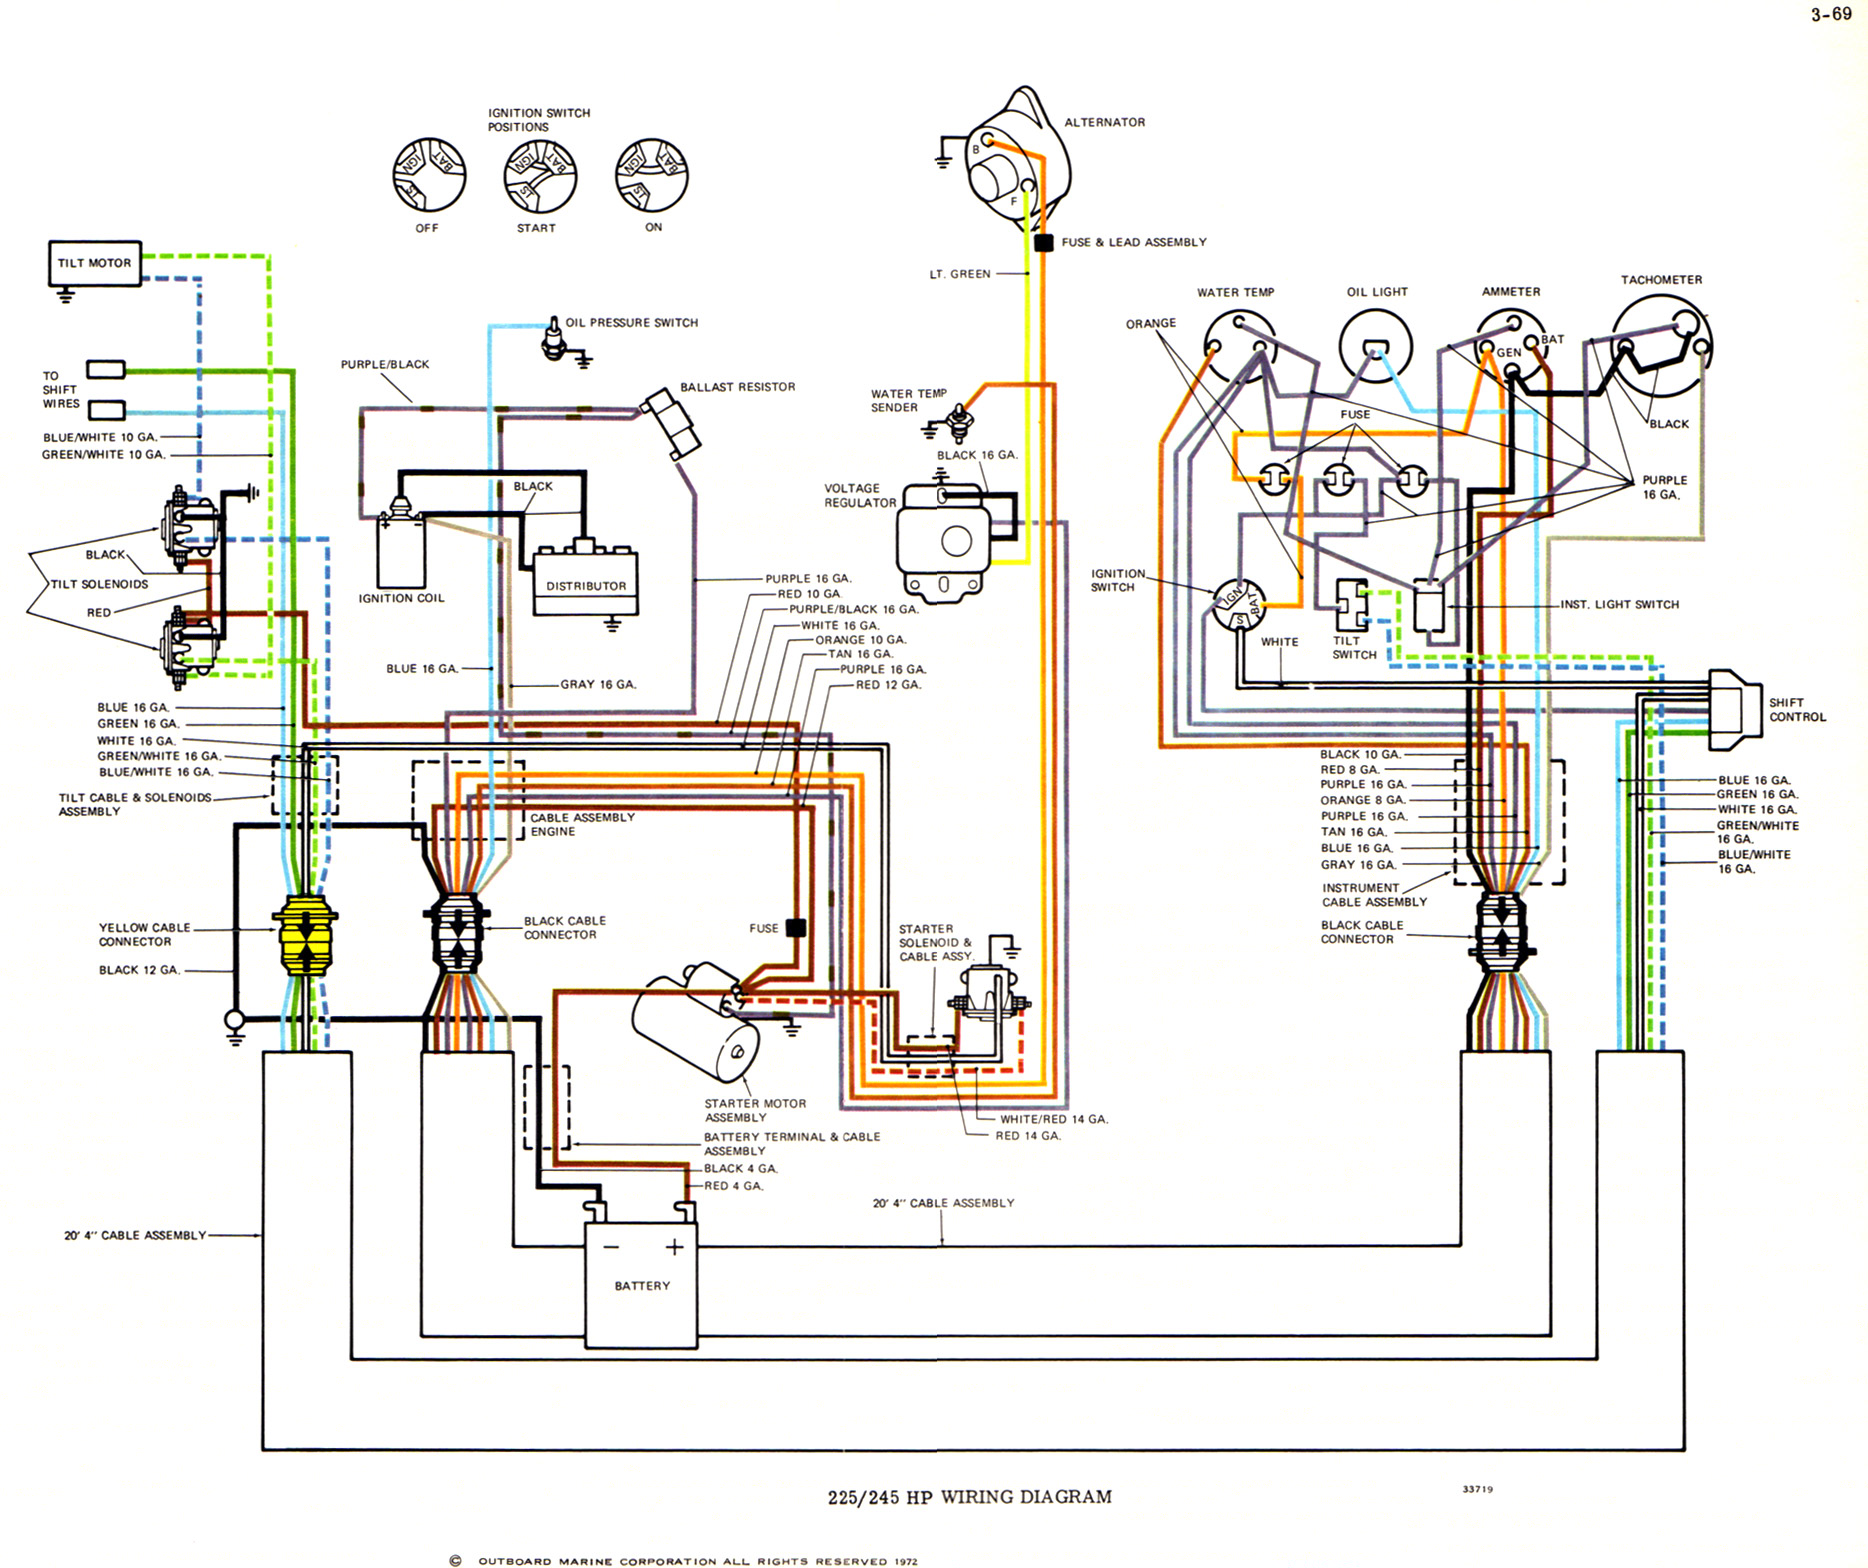 Sensational 0583653 Omc Wiring Diagram Wiring Diagram Wiring Cloud Geisbieswglorg